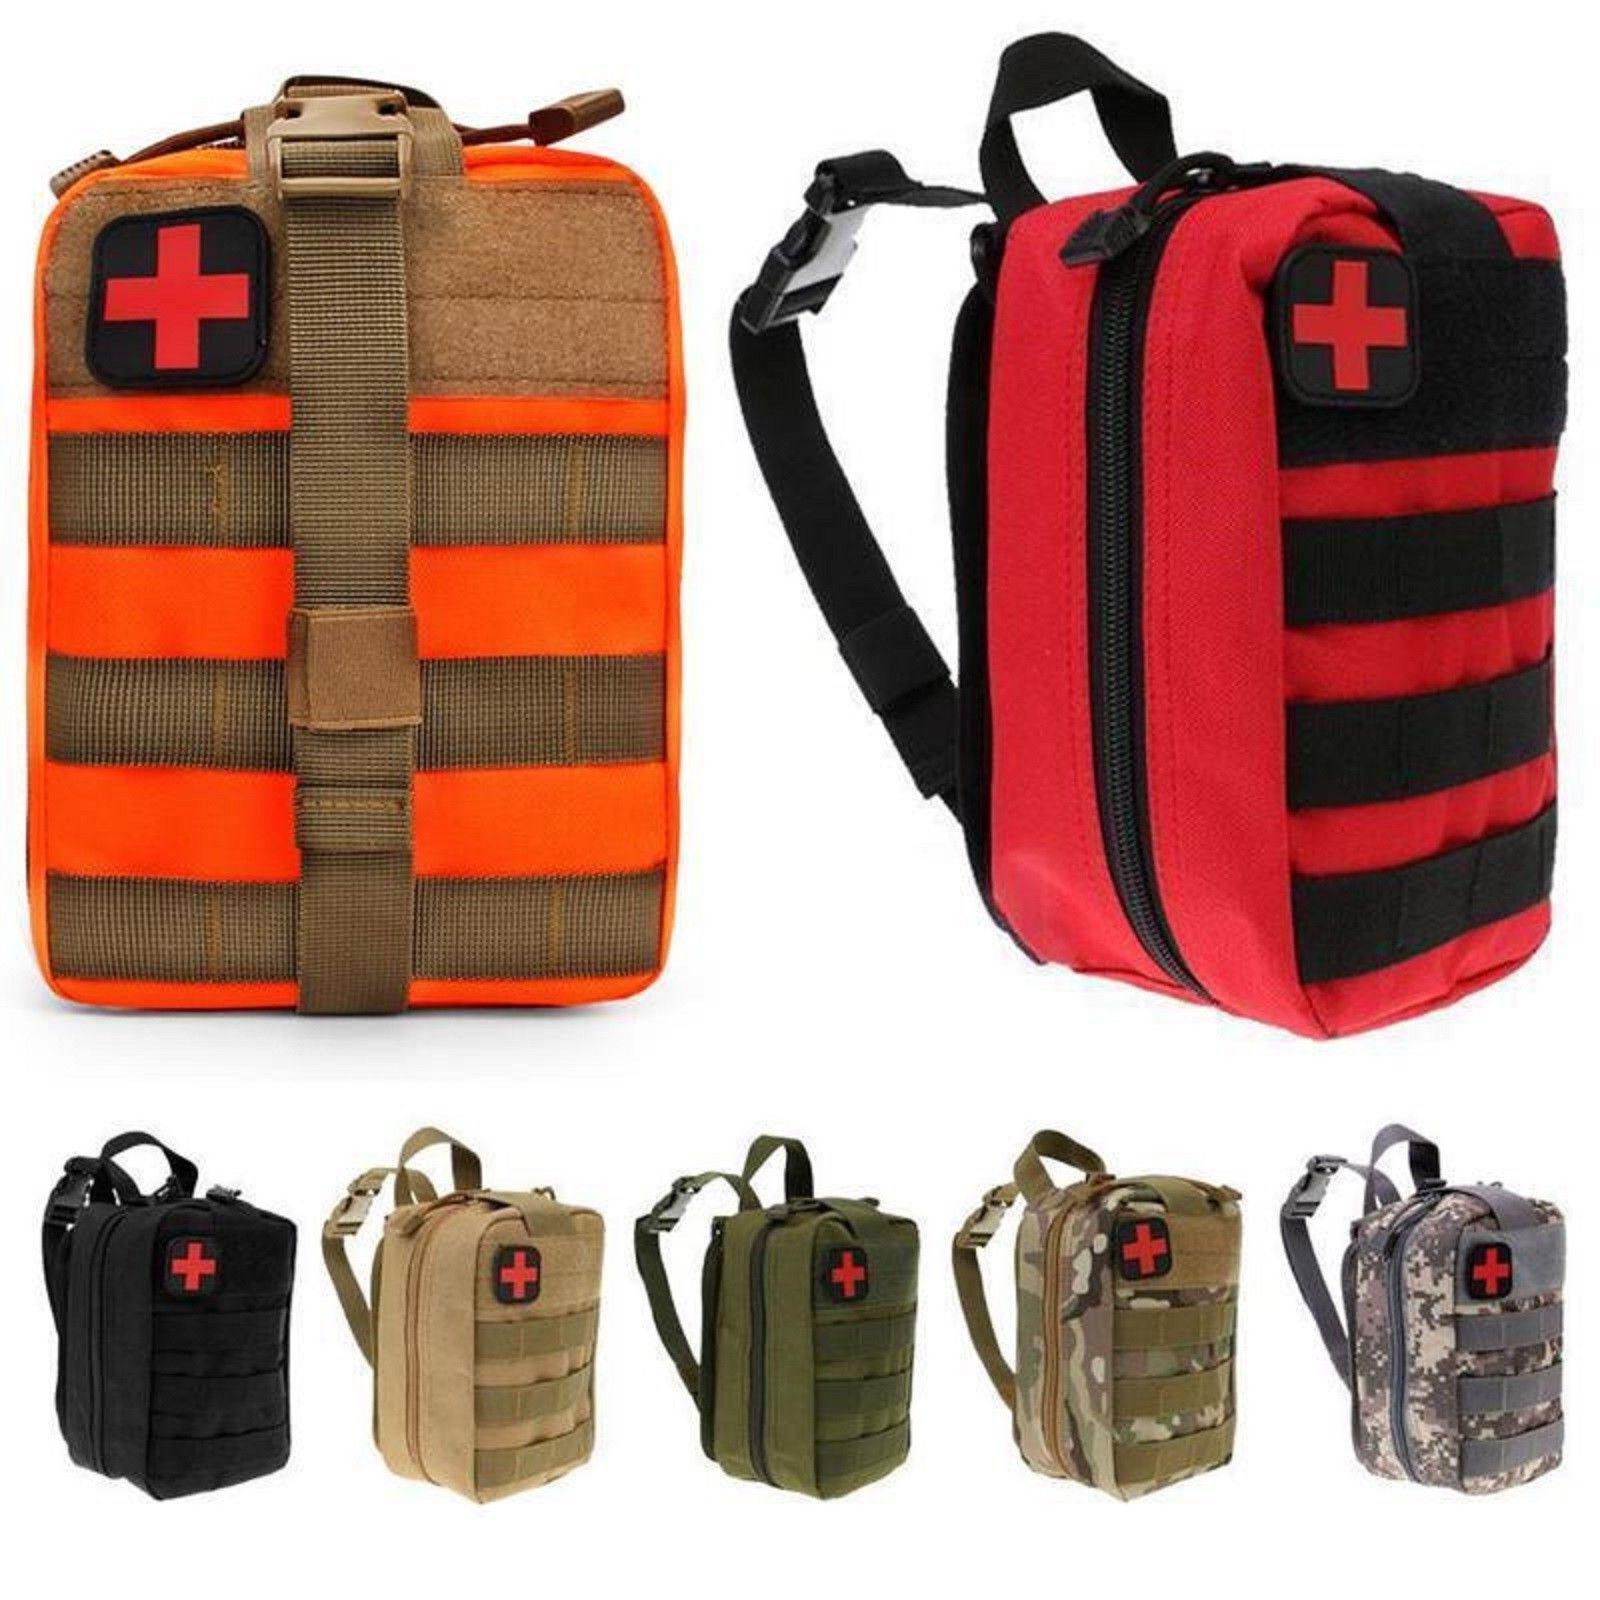 outdoor tactical waist pack medical travel first